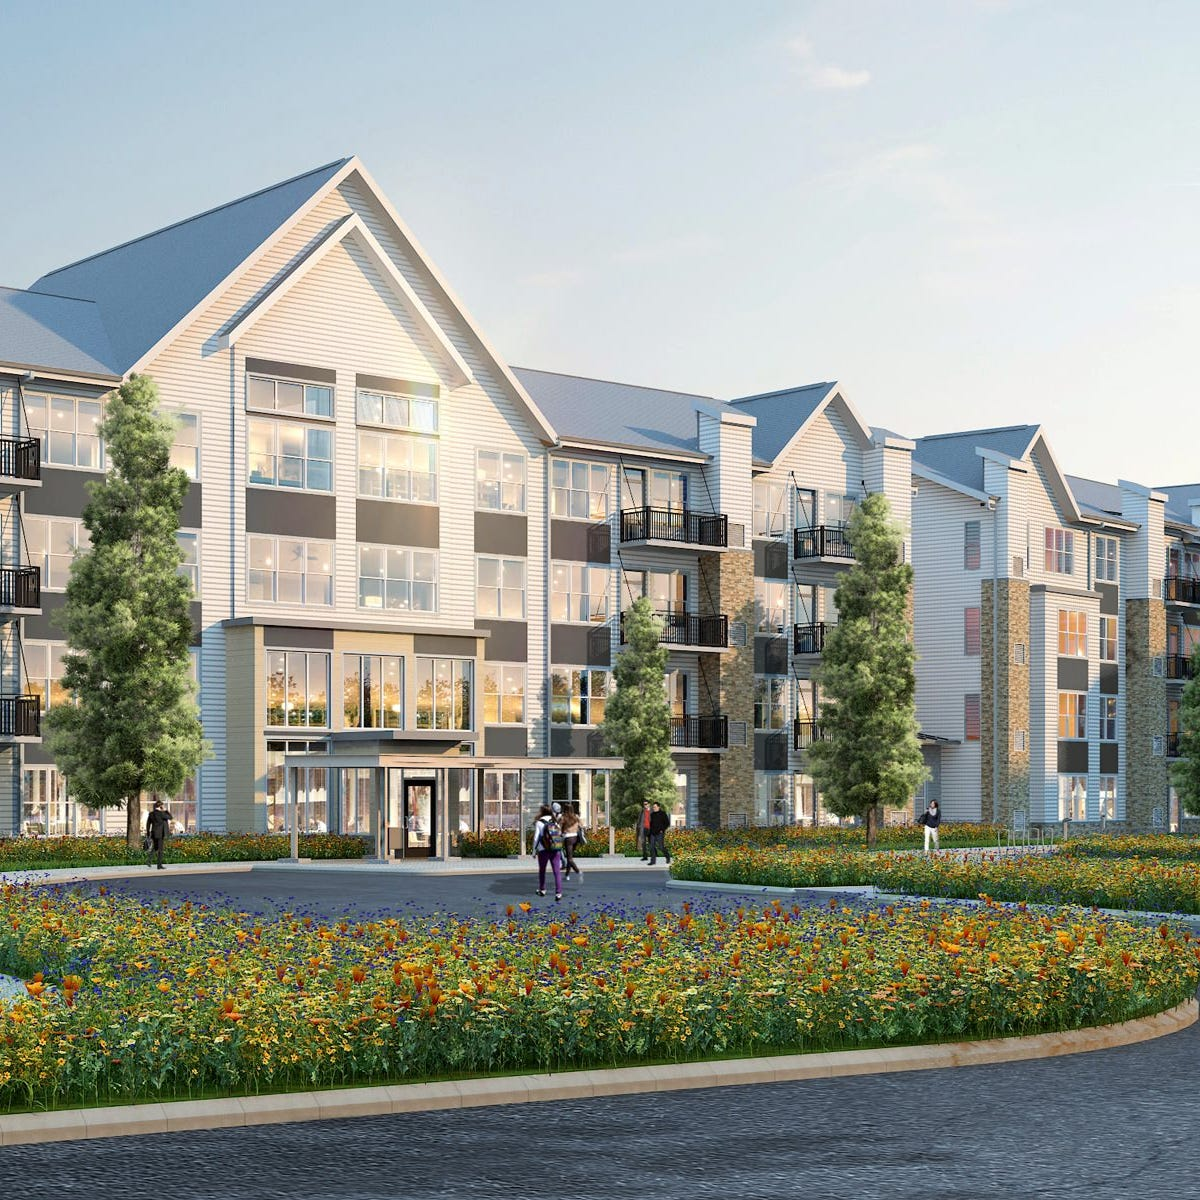 Here's a look at the newest apartment buildings coming to St. Cloud